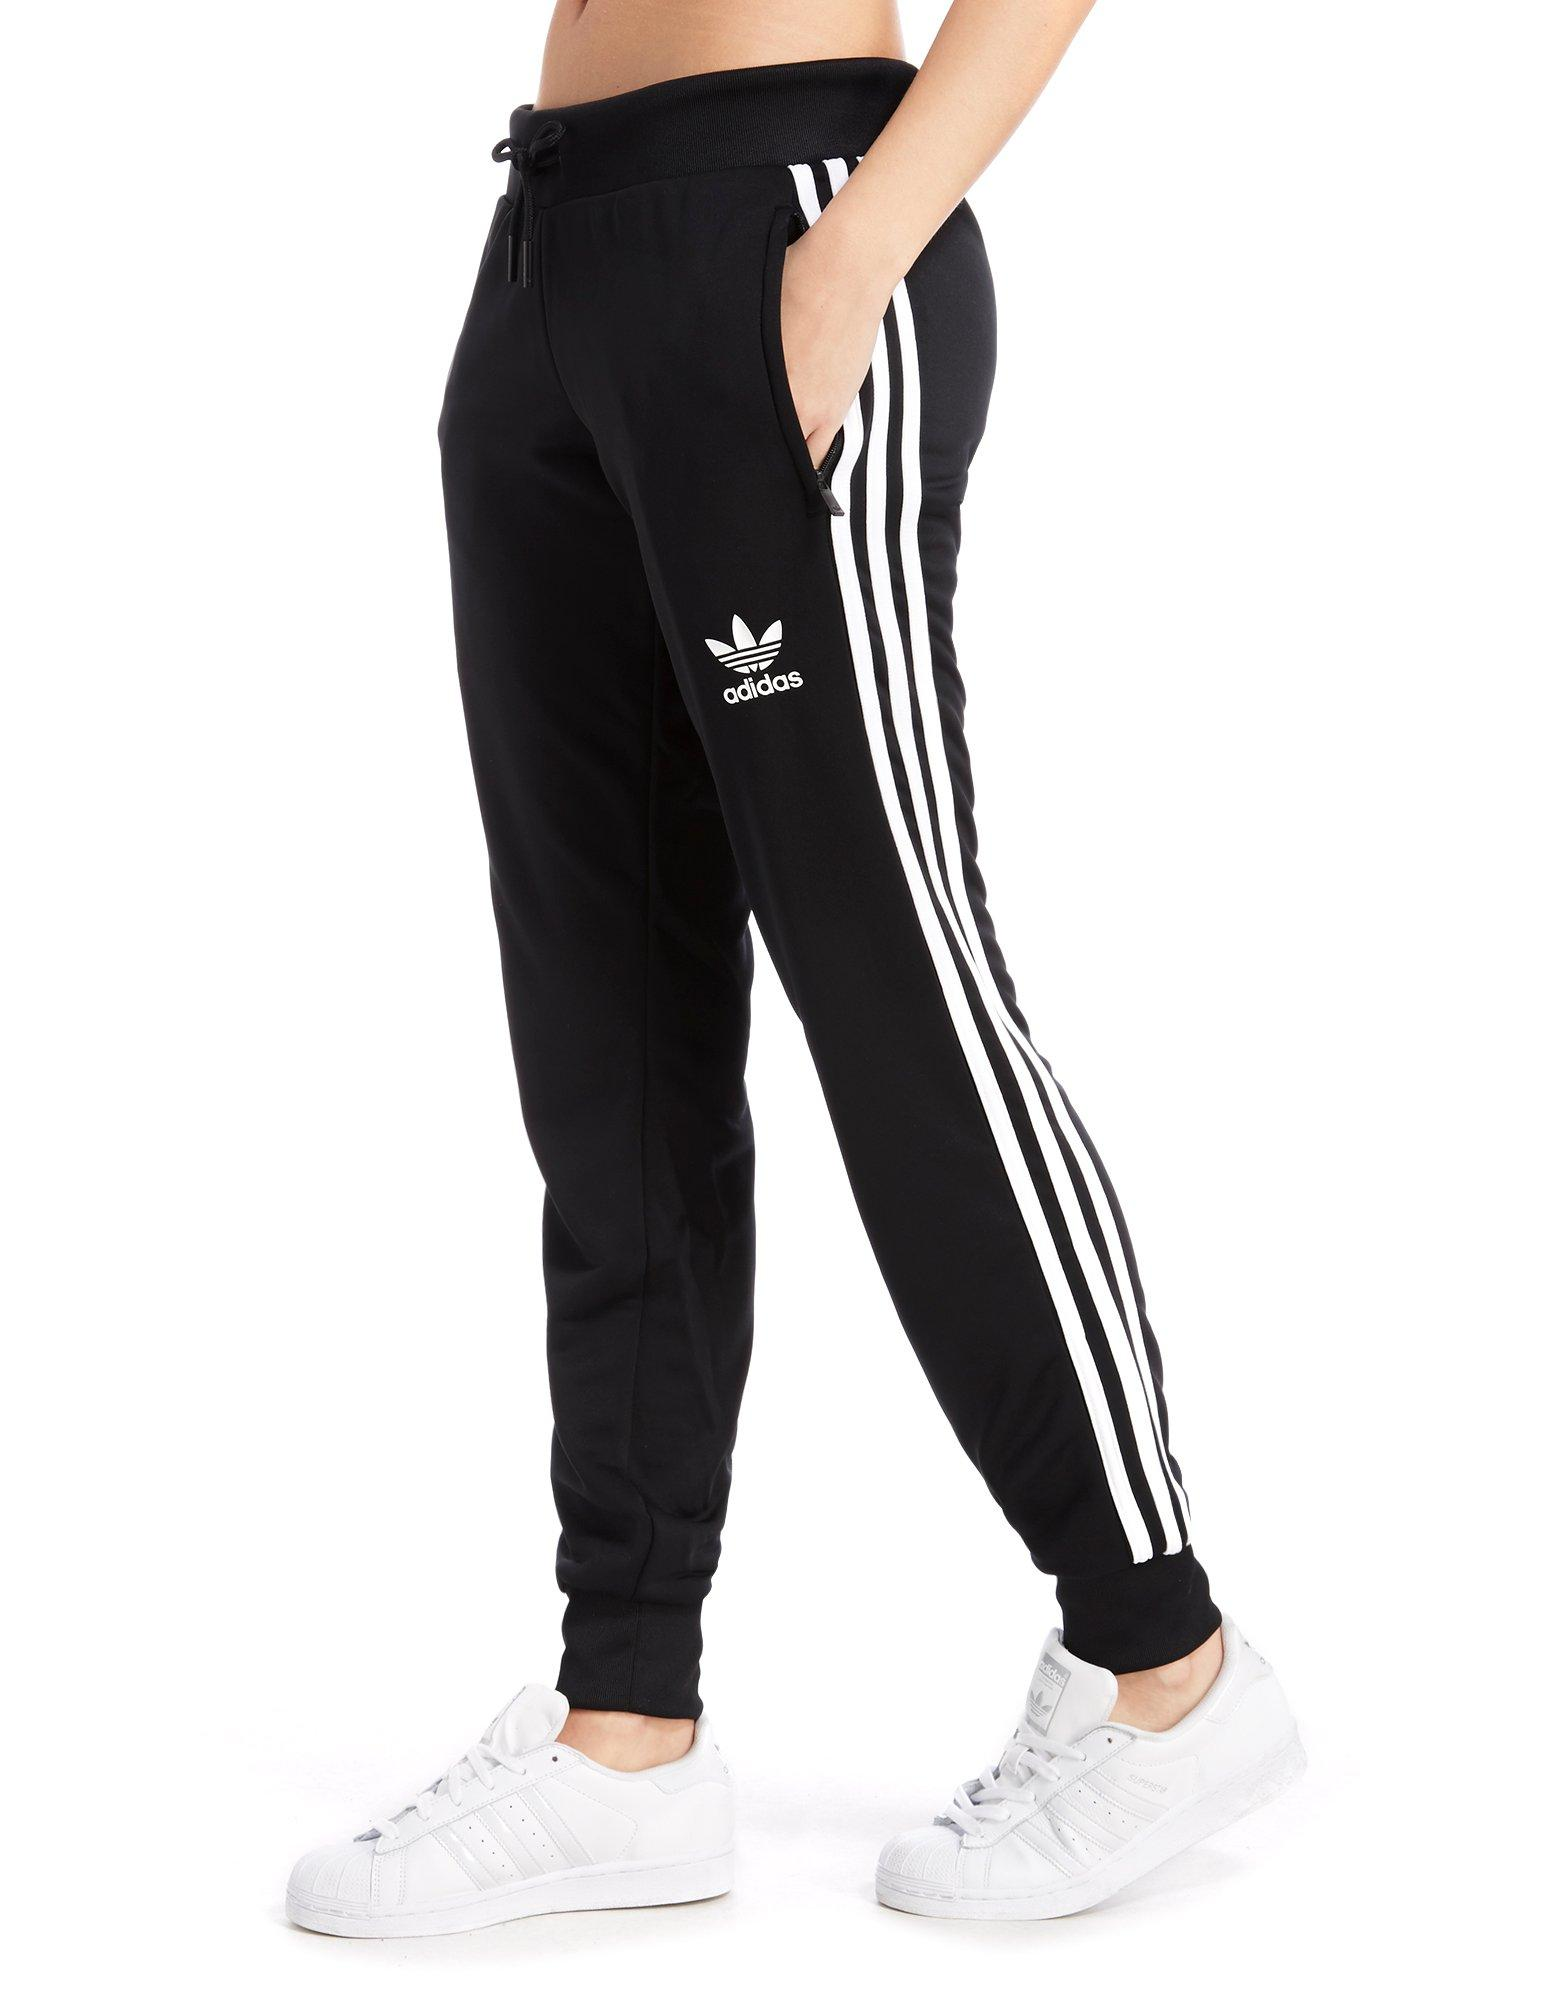 adidas joggers adidas originals poly 3-stripes pants | jd sports JPECOSW